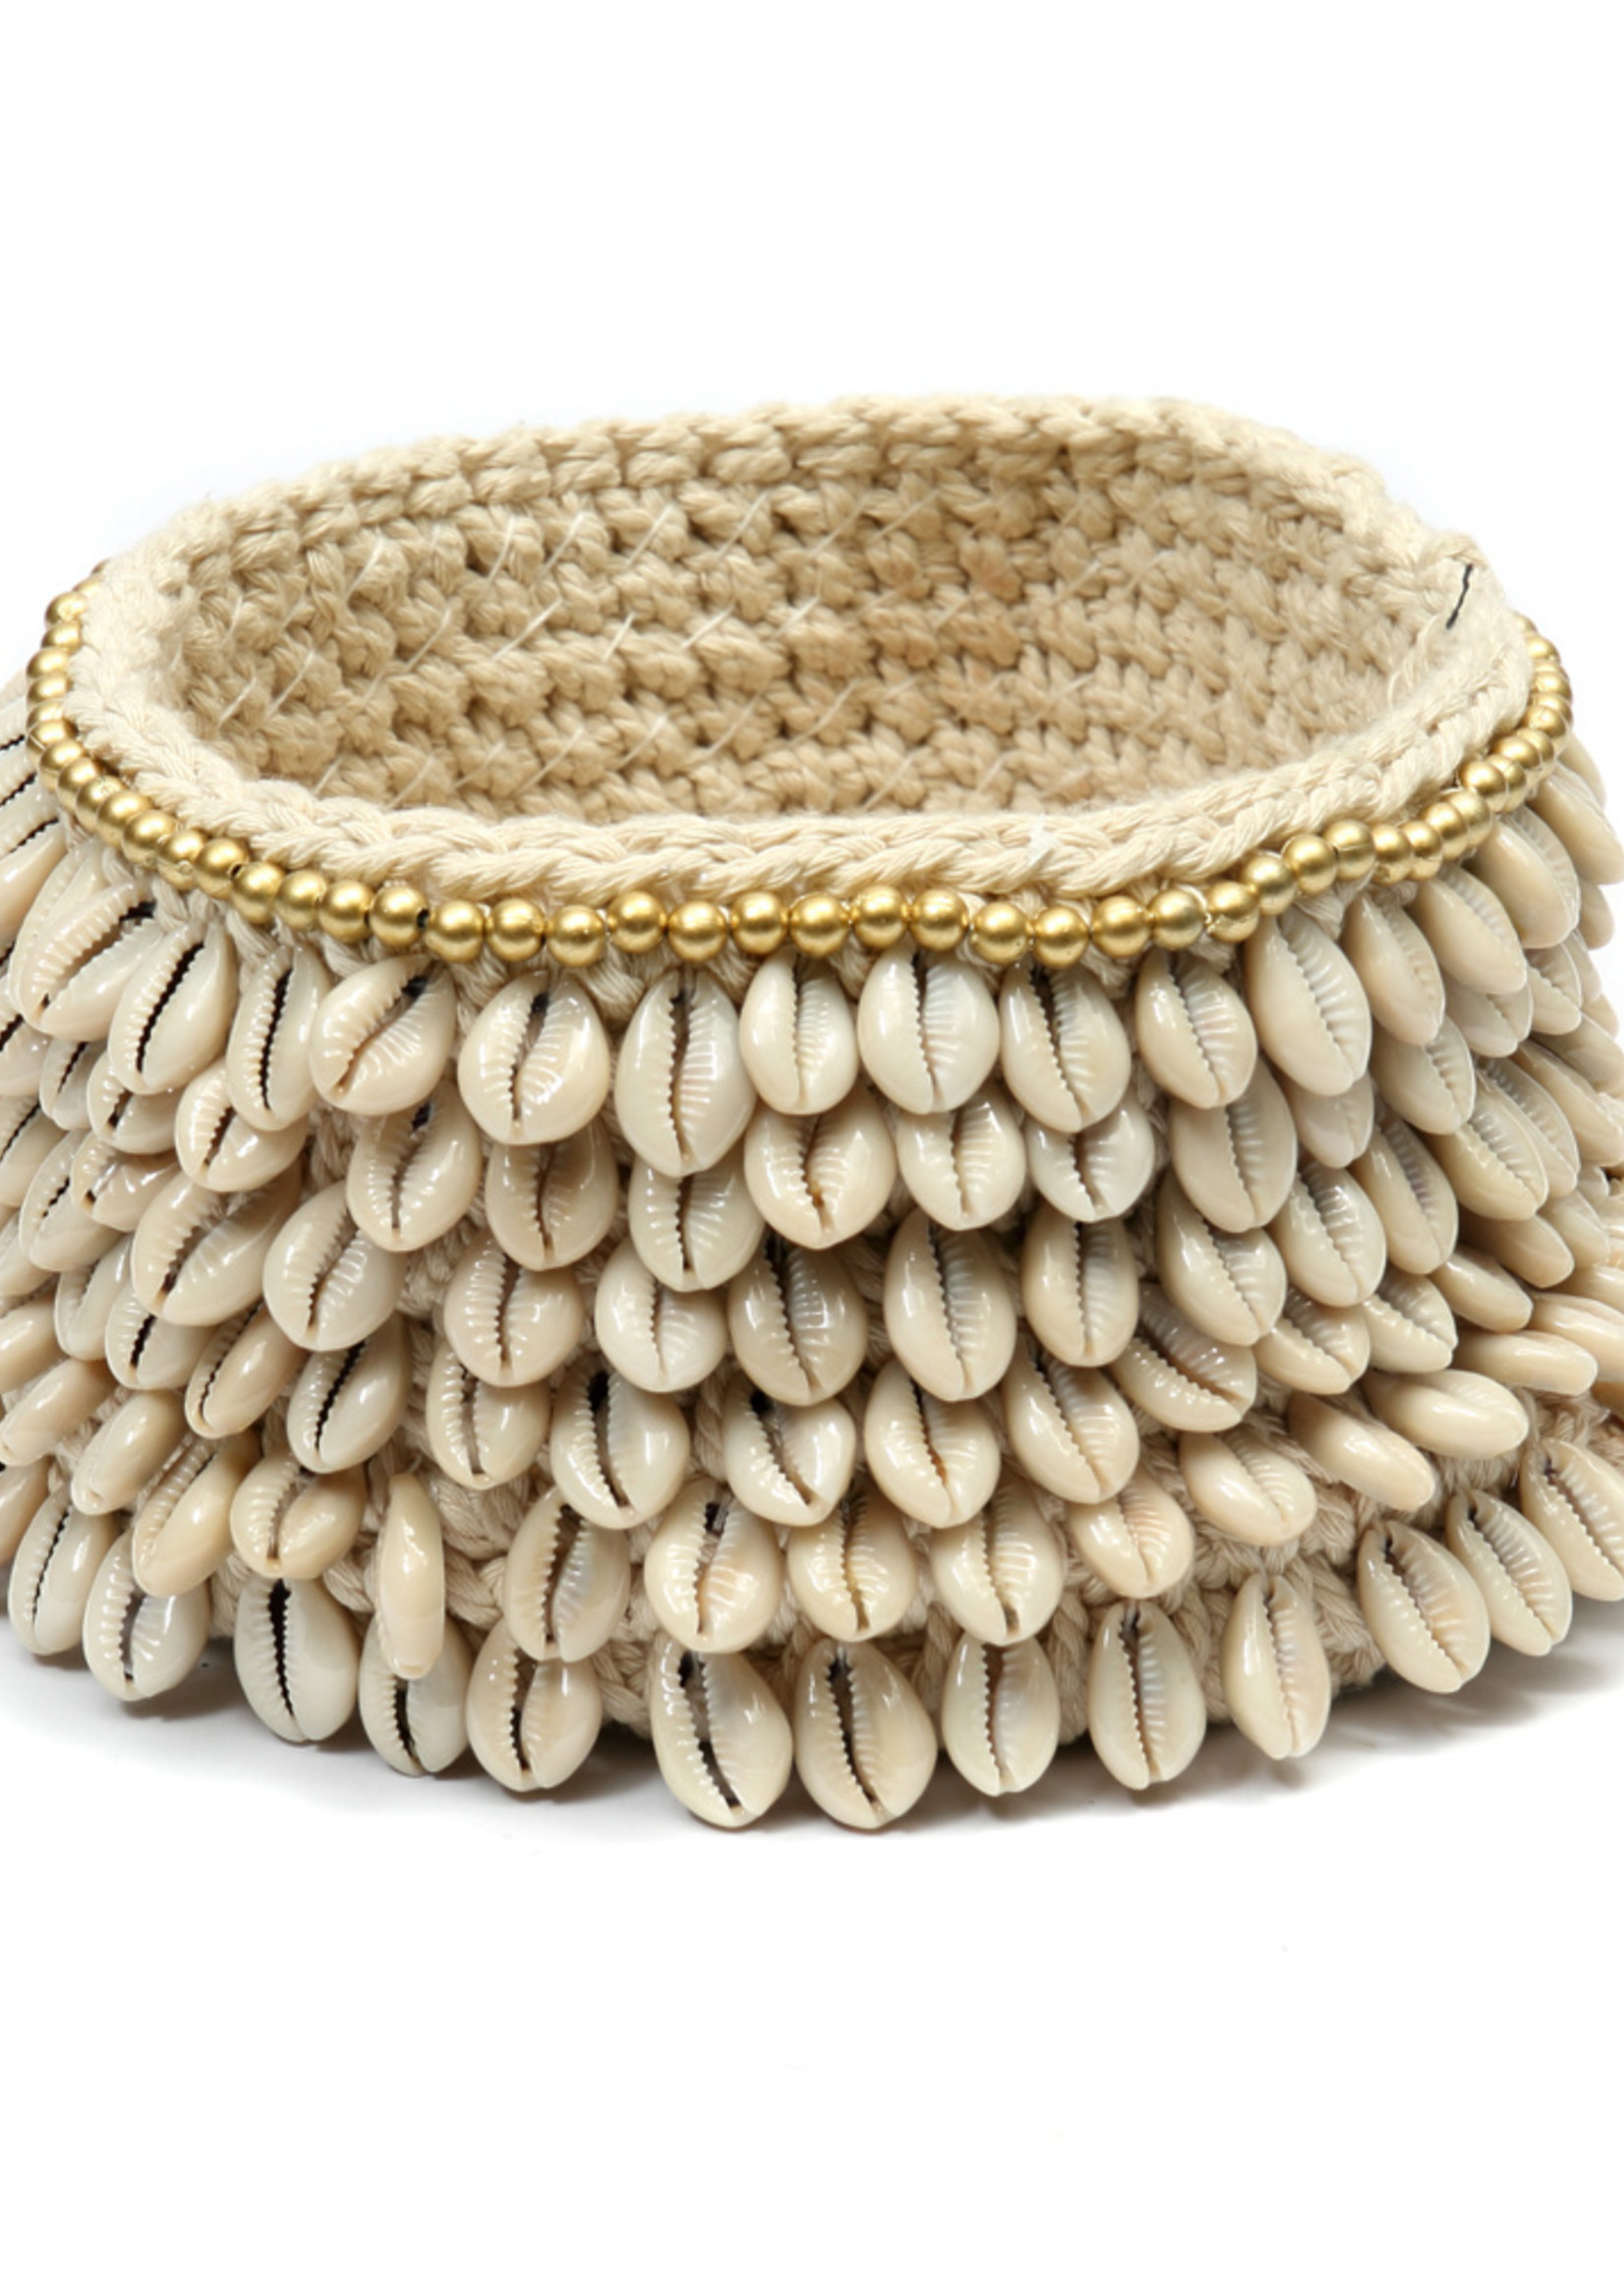 The Gold & Cowrie Macrame Planter - Natural Gold - M